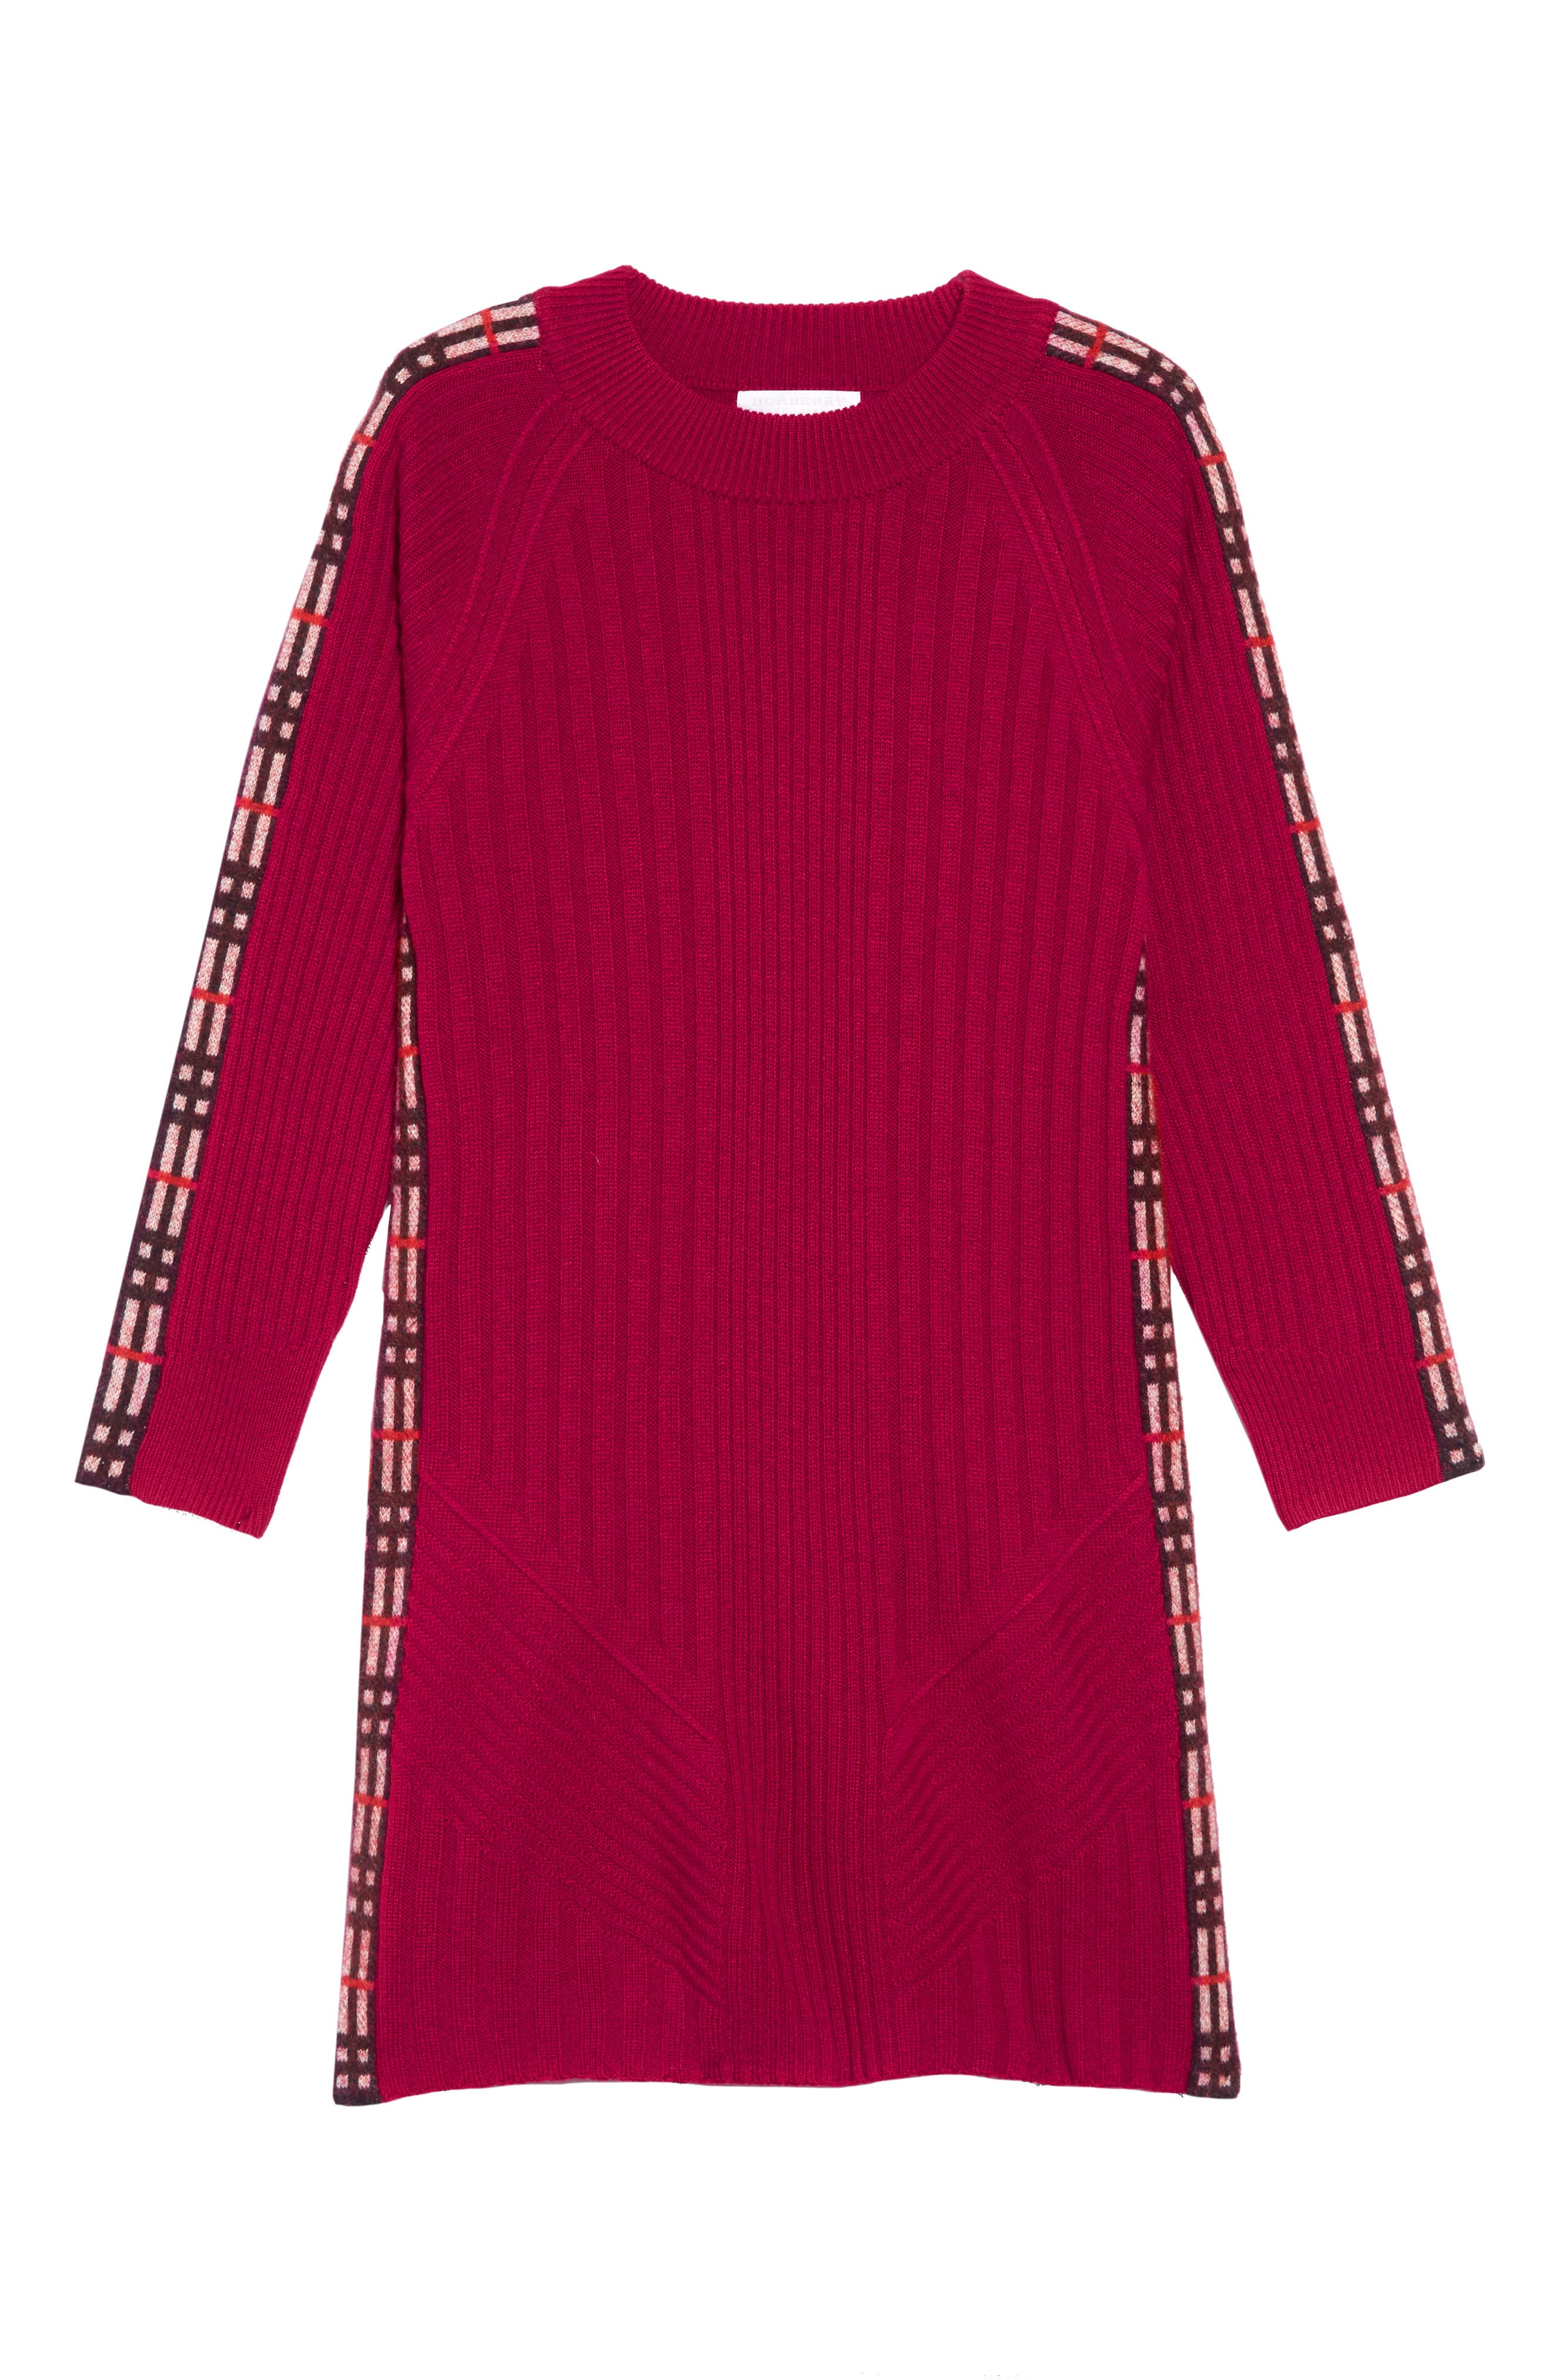 Kids Cathina Check Detail Wool & Cashmere Sweater Dress,                         Main,                         color, BURGUNDY RED